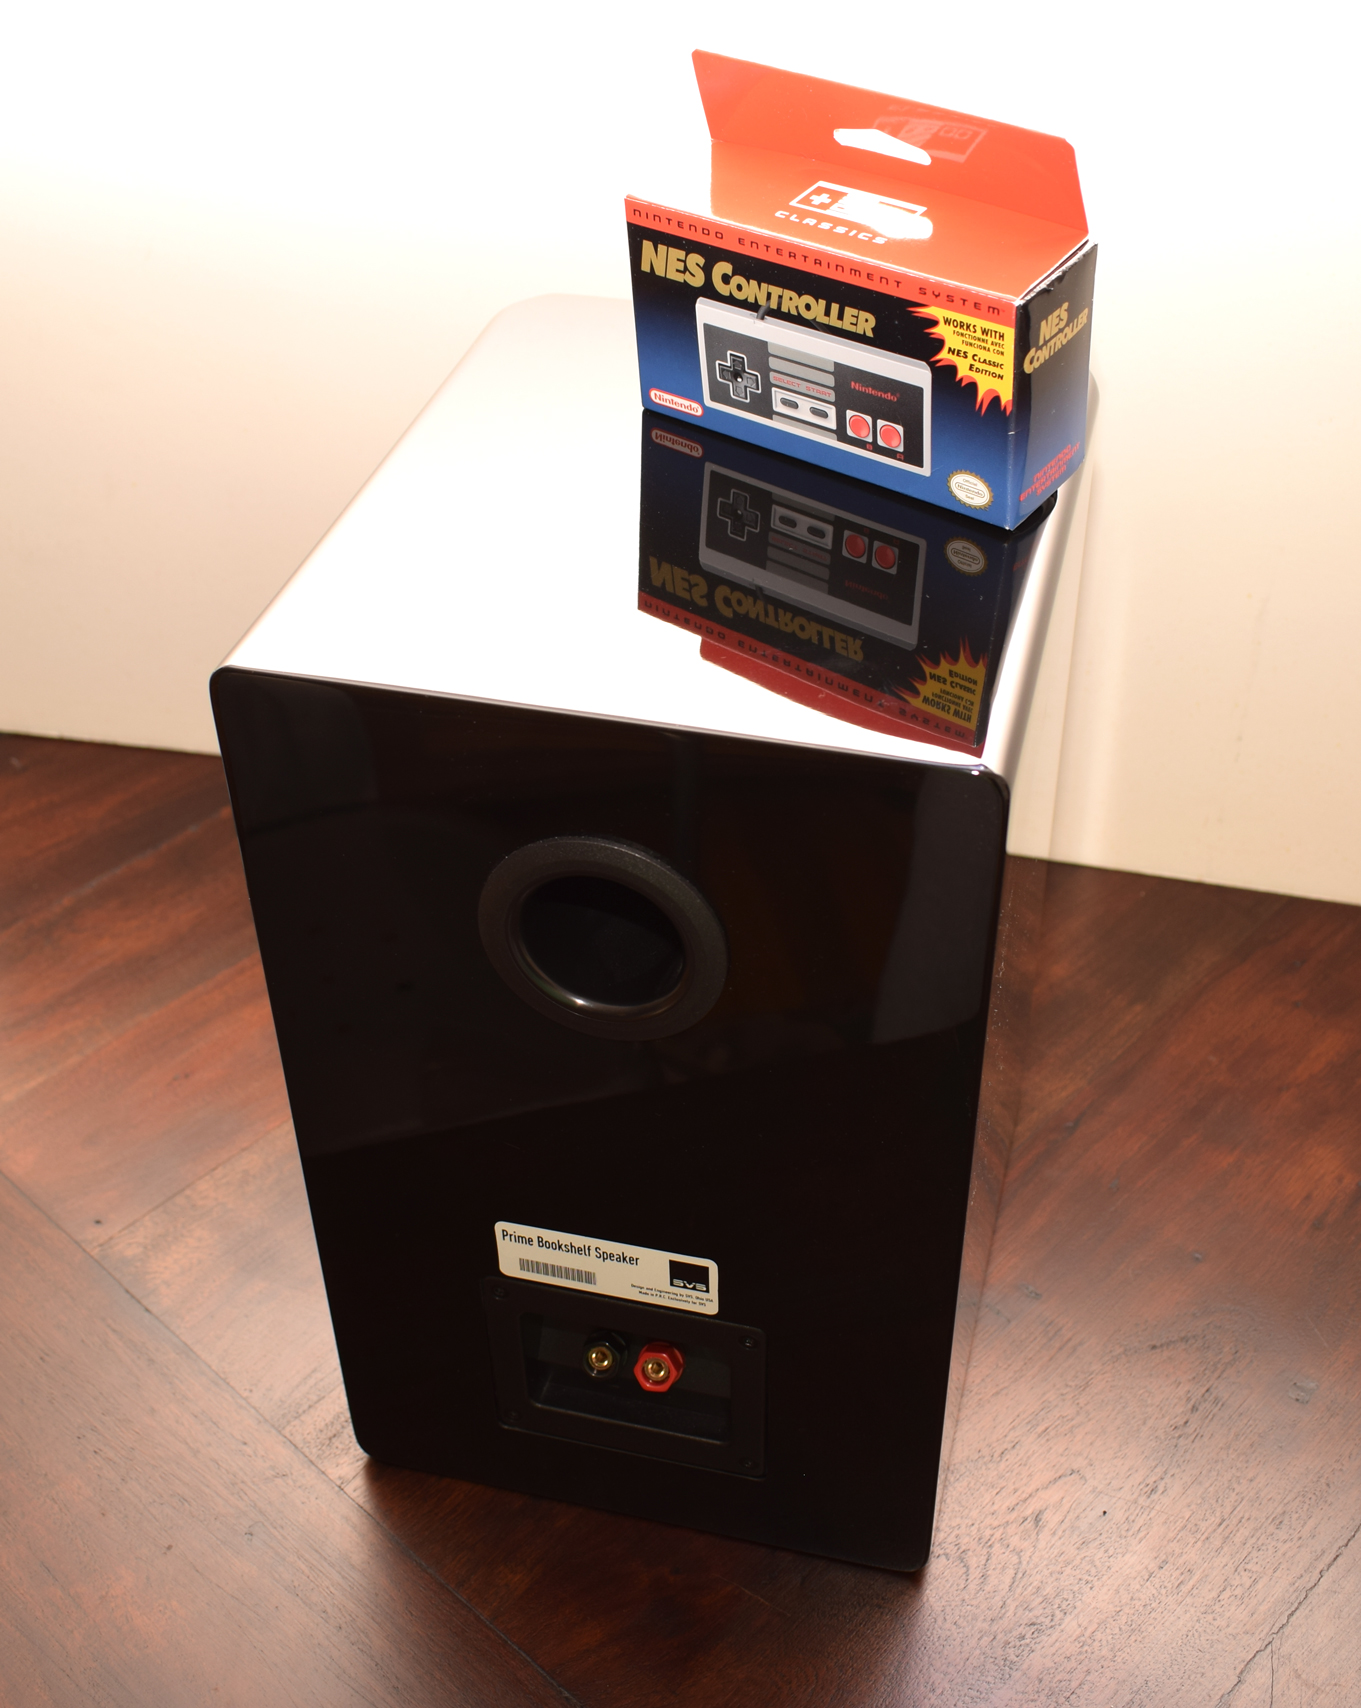 SVS Prime Bookshelf Speaker Review - Rear with NES Classic Controller